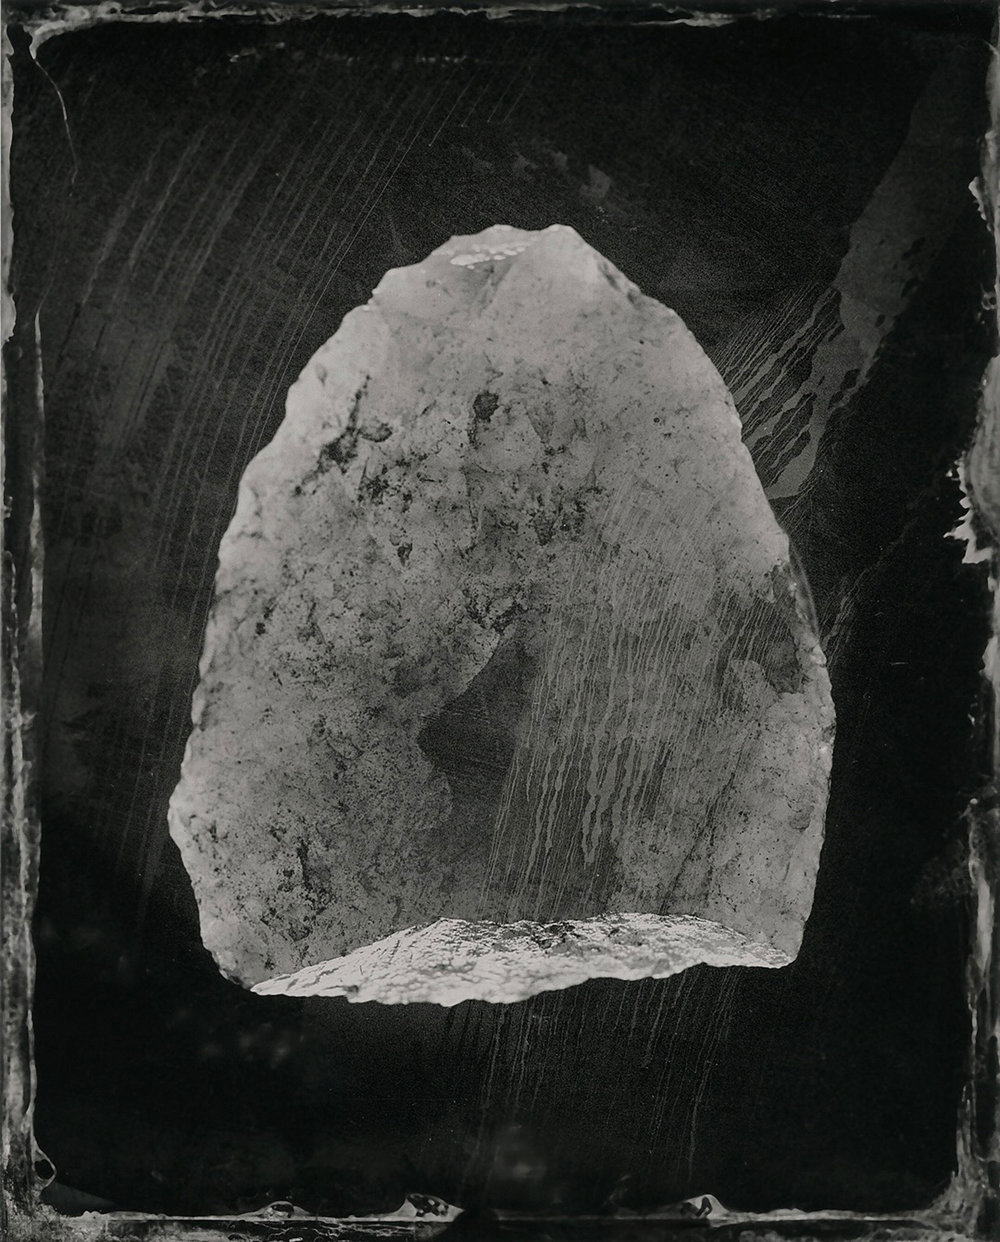 This is a tintype (old photographic process) of a quartz stone tool. This will be another body of work in the future. I have added this image to show you the potential this body of work has for exploration through other mediums. This photo was taken during the DCA and Country Arts WA supported training with Ellie Young at Gold Street Studios 2016.